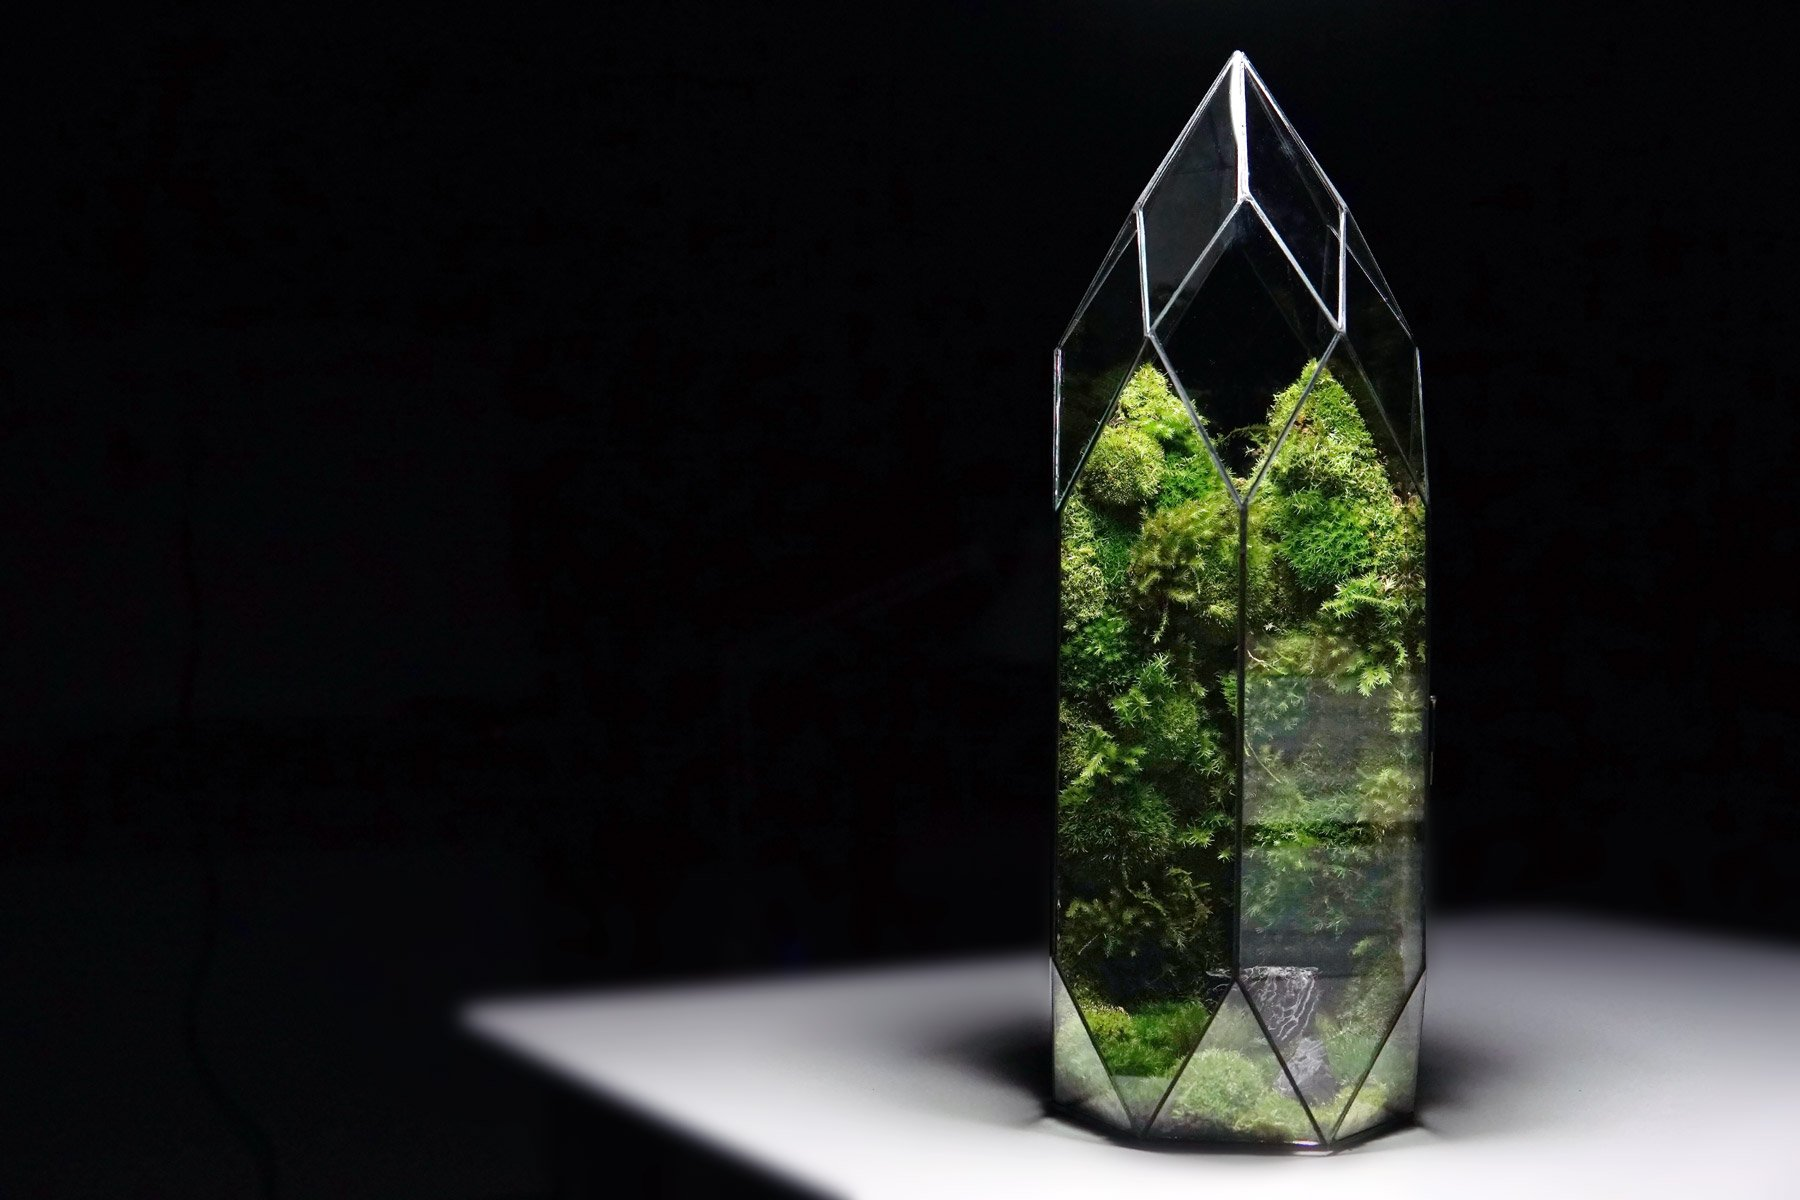 Awesome Miniature Ecosystem From TerraLiving